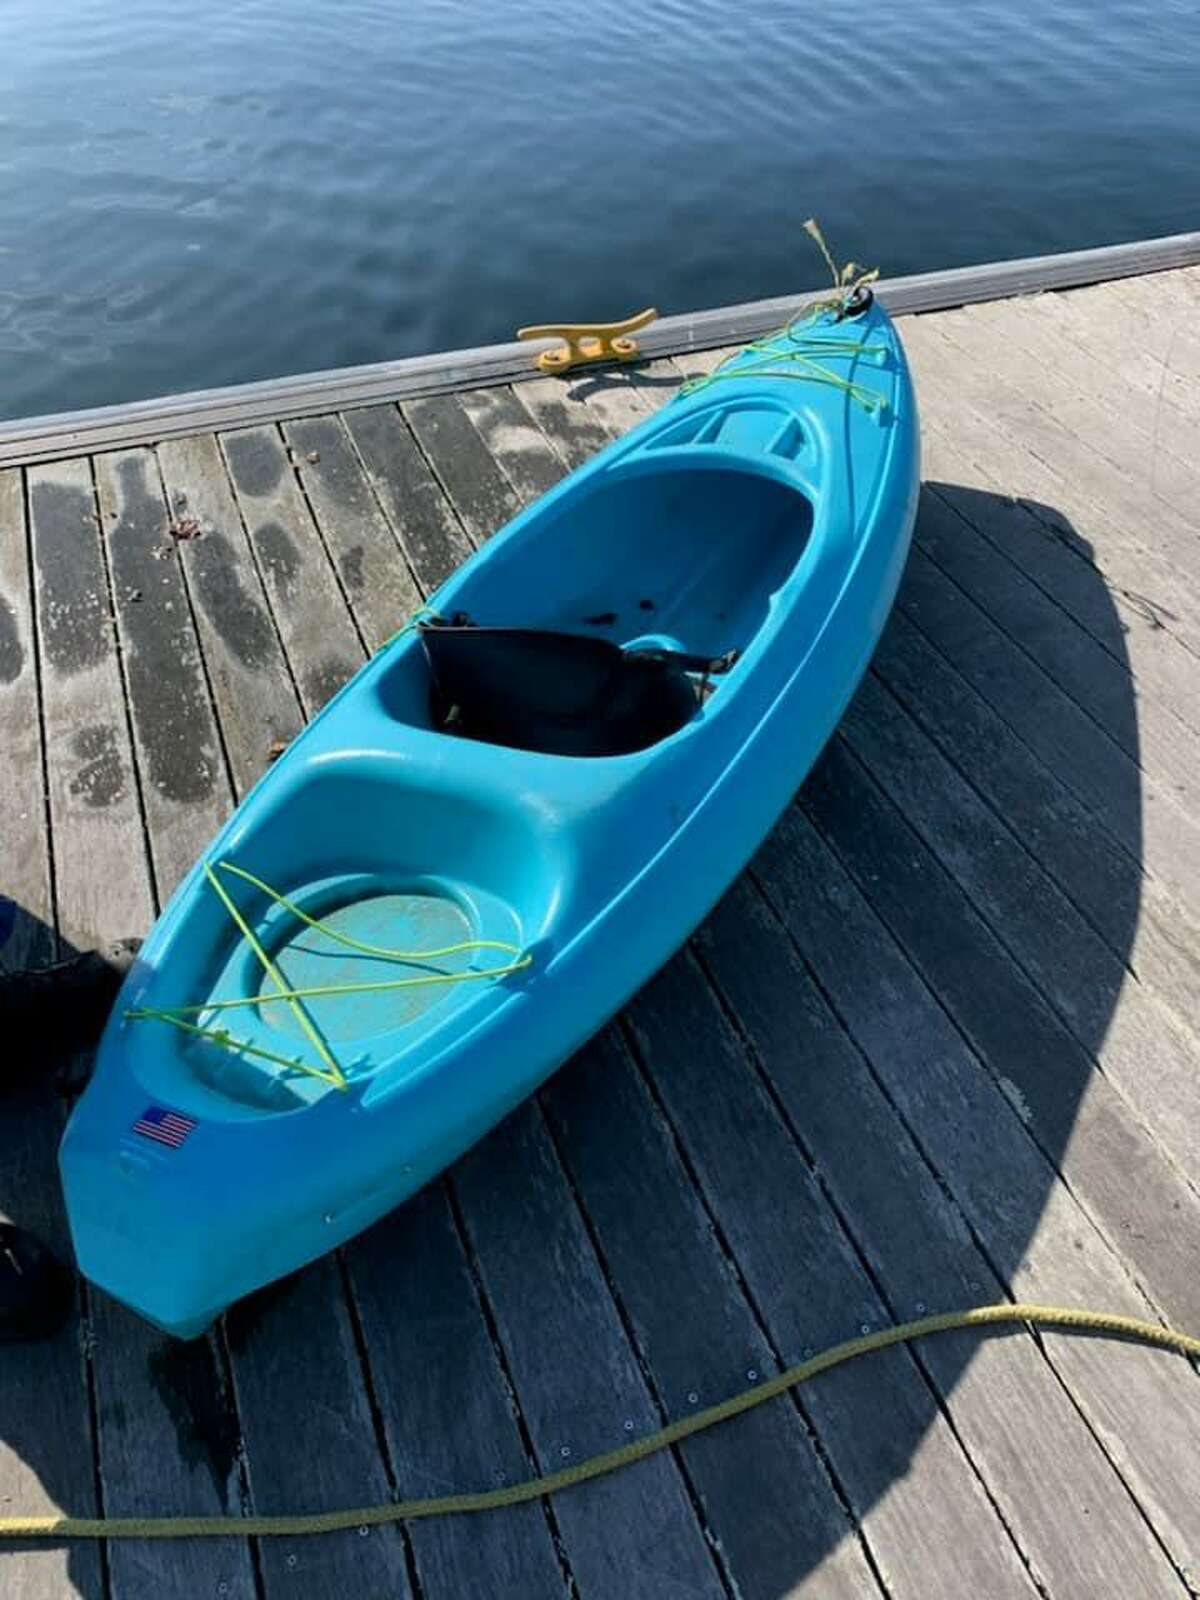 The kayak found unoccupied at the Fort Trumbull State Park fishing pier in New London, Conn. on Sunday, Nov. 8, 2020.